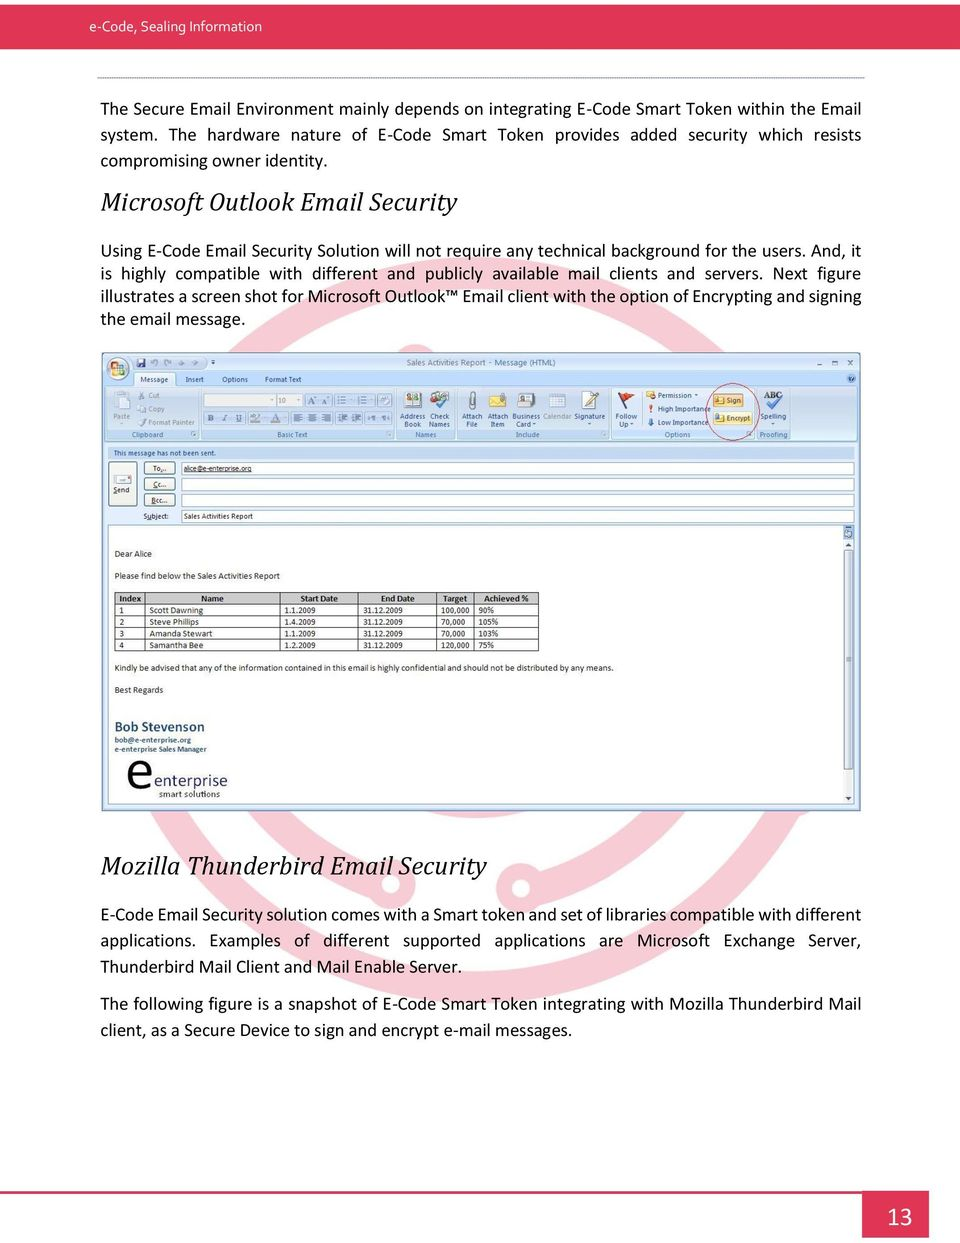 Microsoft Outlook Email Security Using E-Code Email Security Solution will not require any technical background for the users.